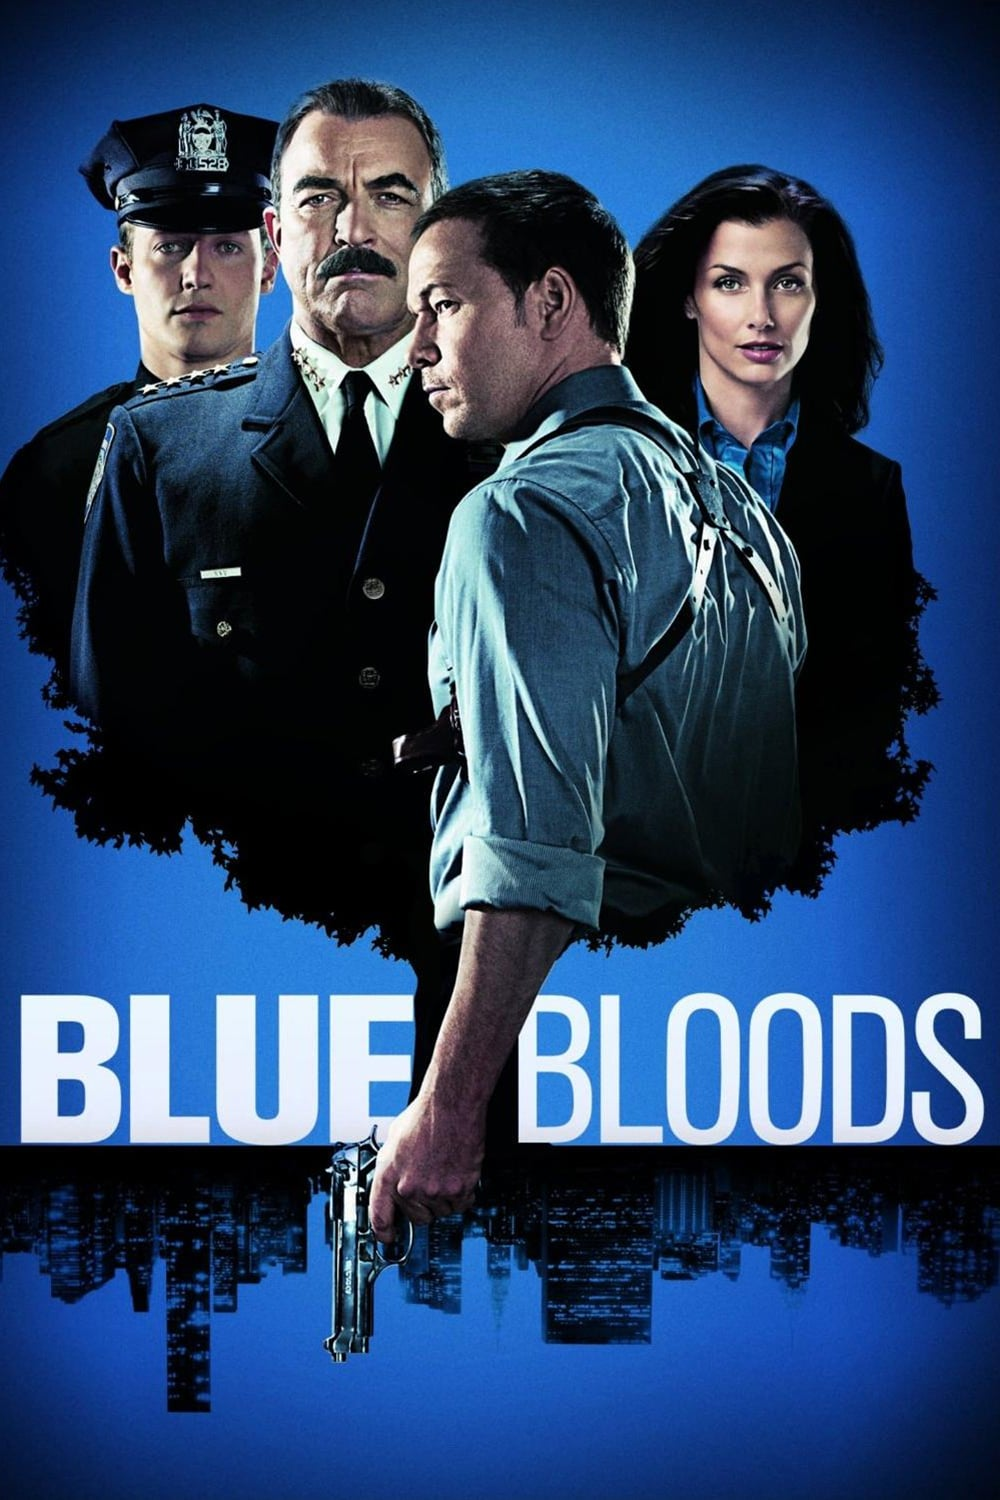 Blue Bloods, 2010